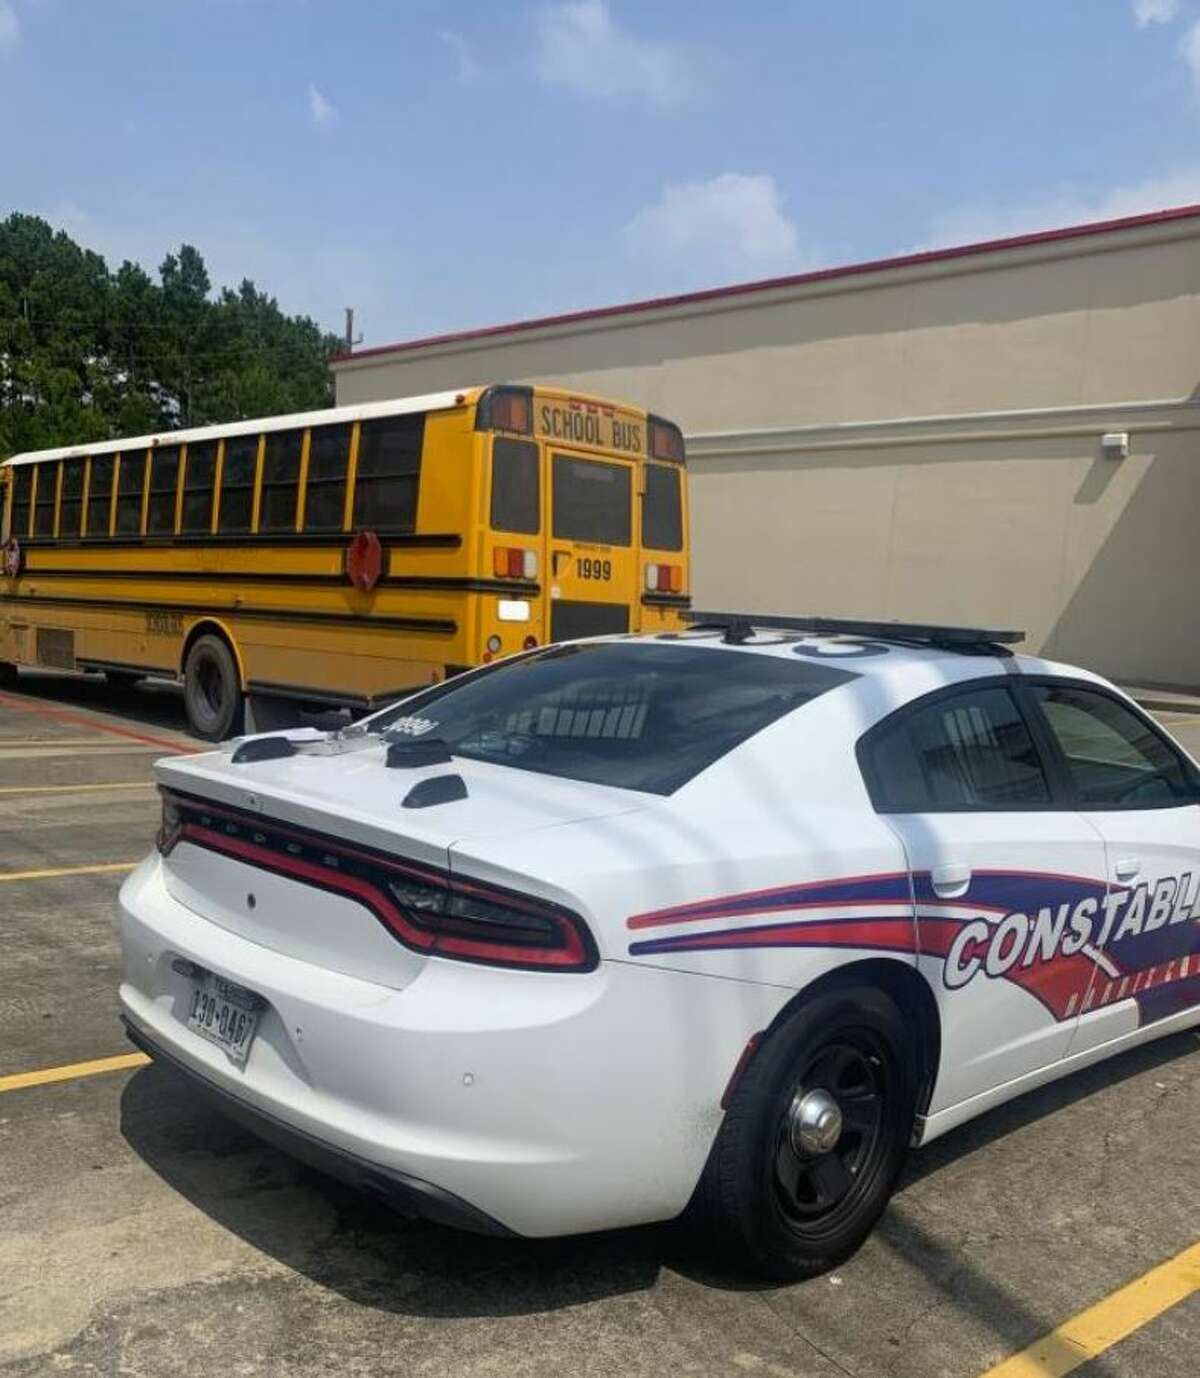 Tweeted photo of the school bus provided by Harris County Pct. 4.